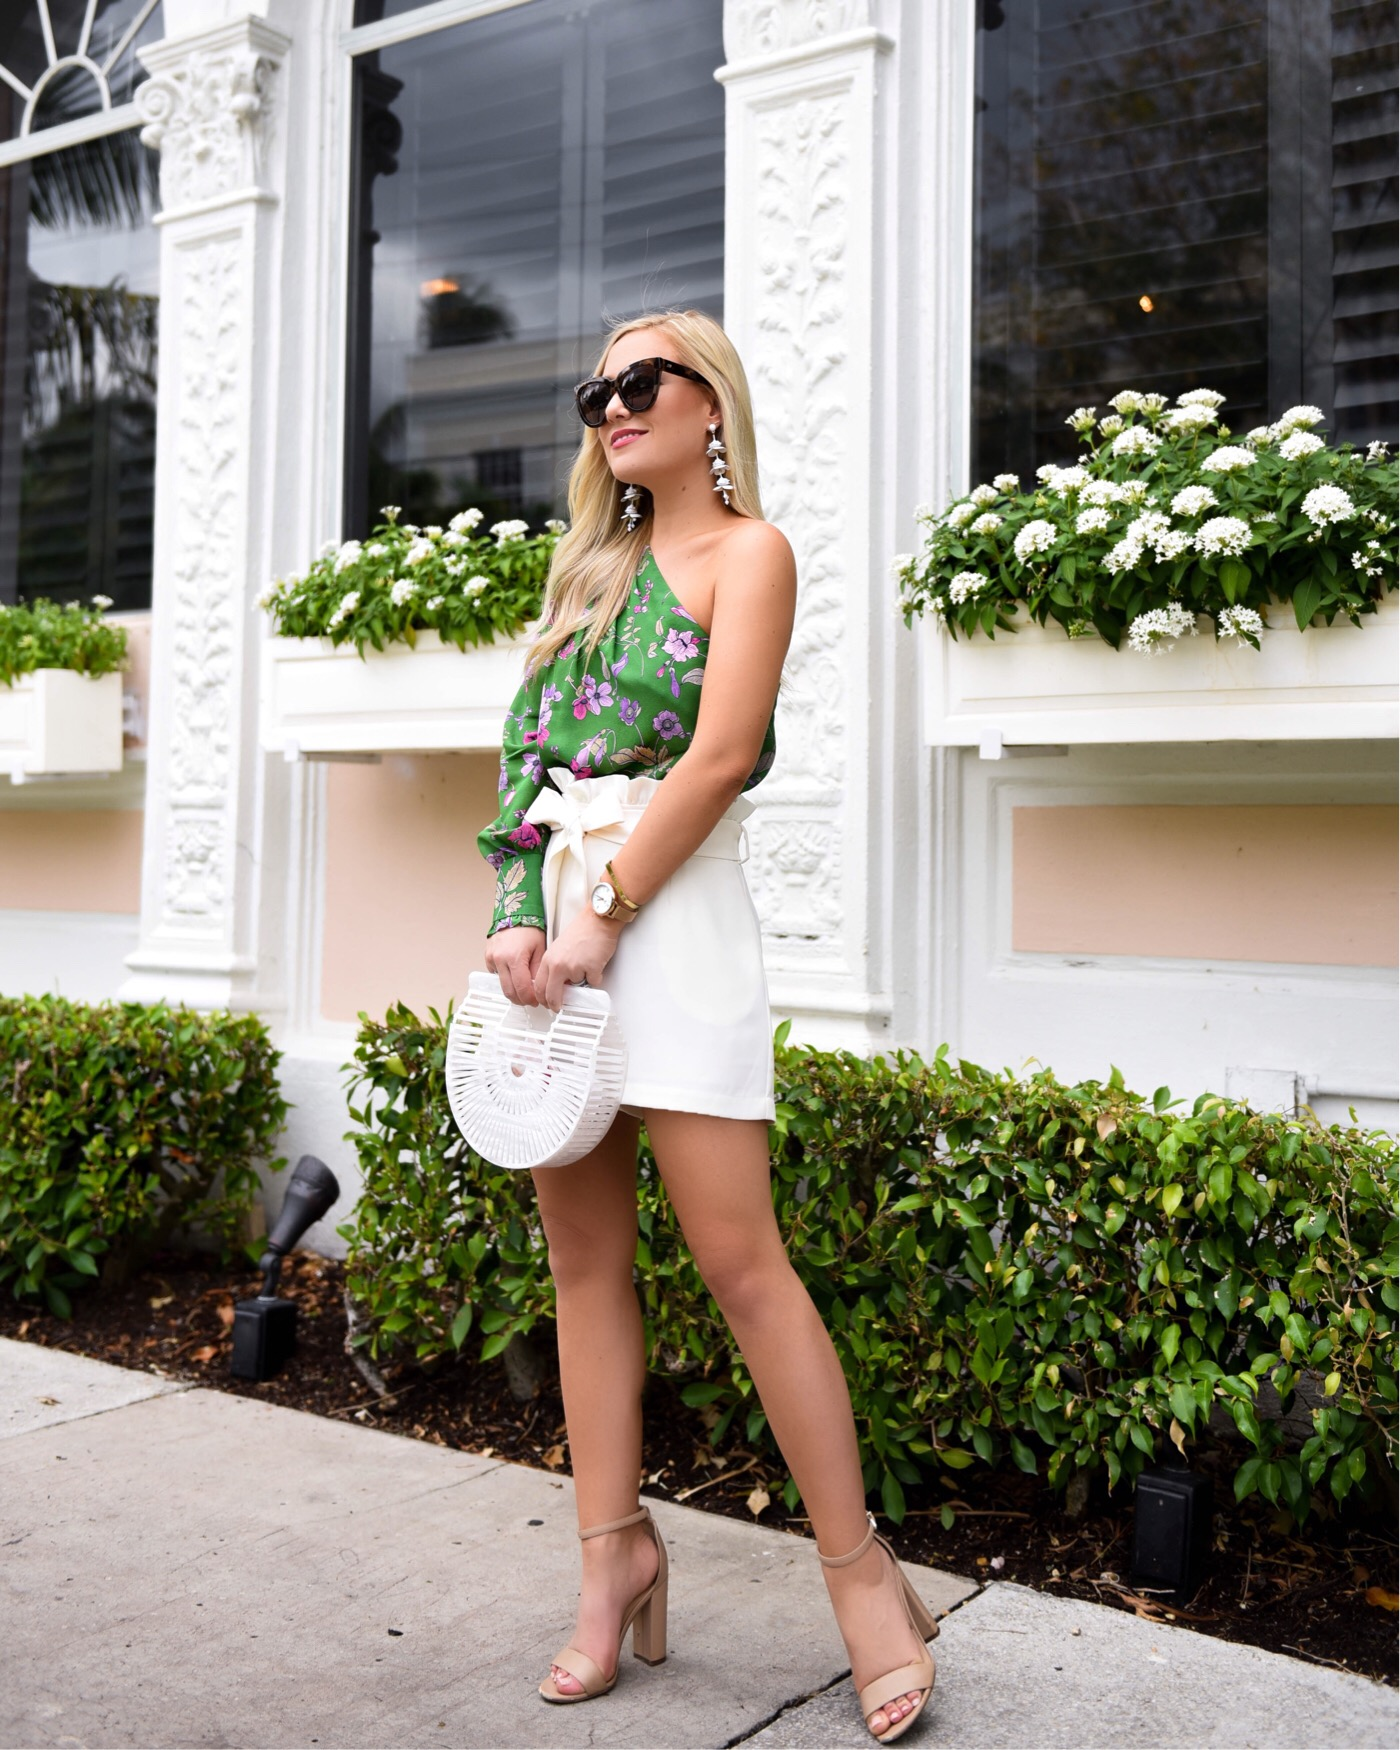 Shoshanna Top, Tie Waist Shorts, Cult Gaia Bag, Sam Edelman Sandals, Shopbop, Shopbop Sale